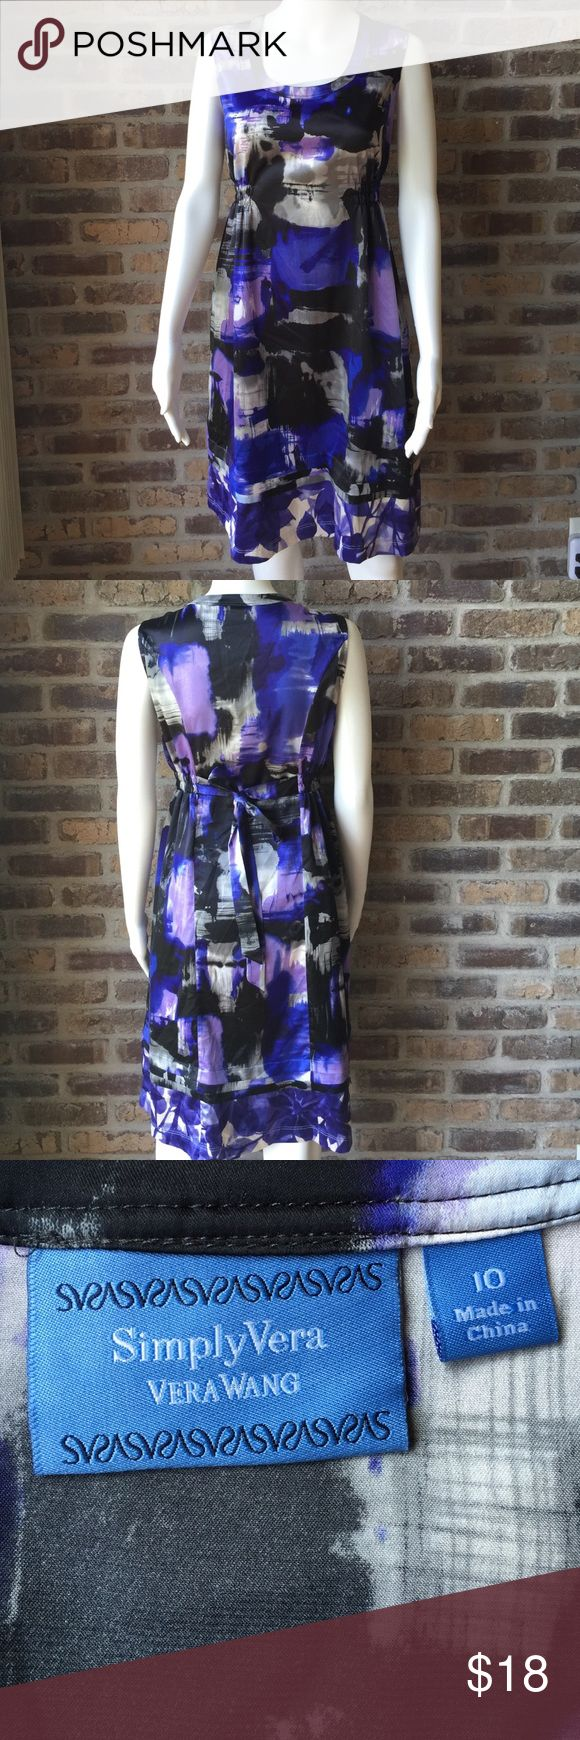 Simply Vera by Vera Wang dress Simply Vera by Vera Wang dress size 10. Simply Vera Vera Wang Dresses